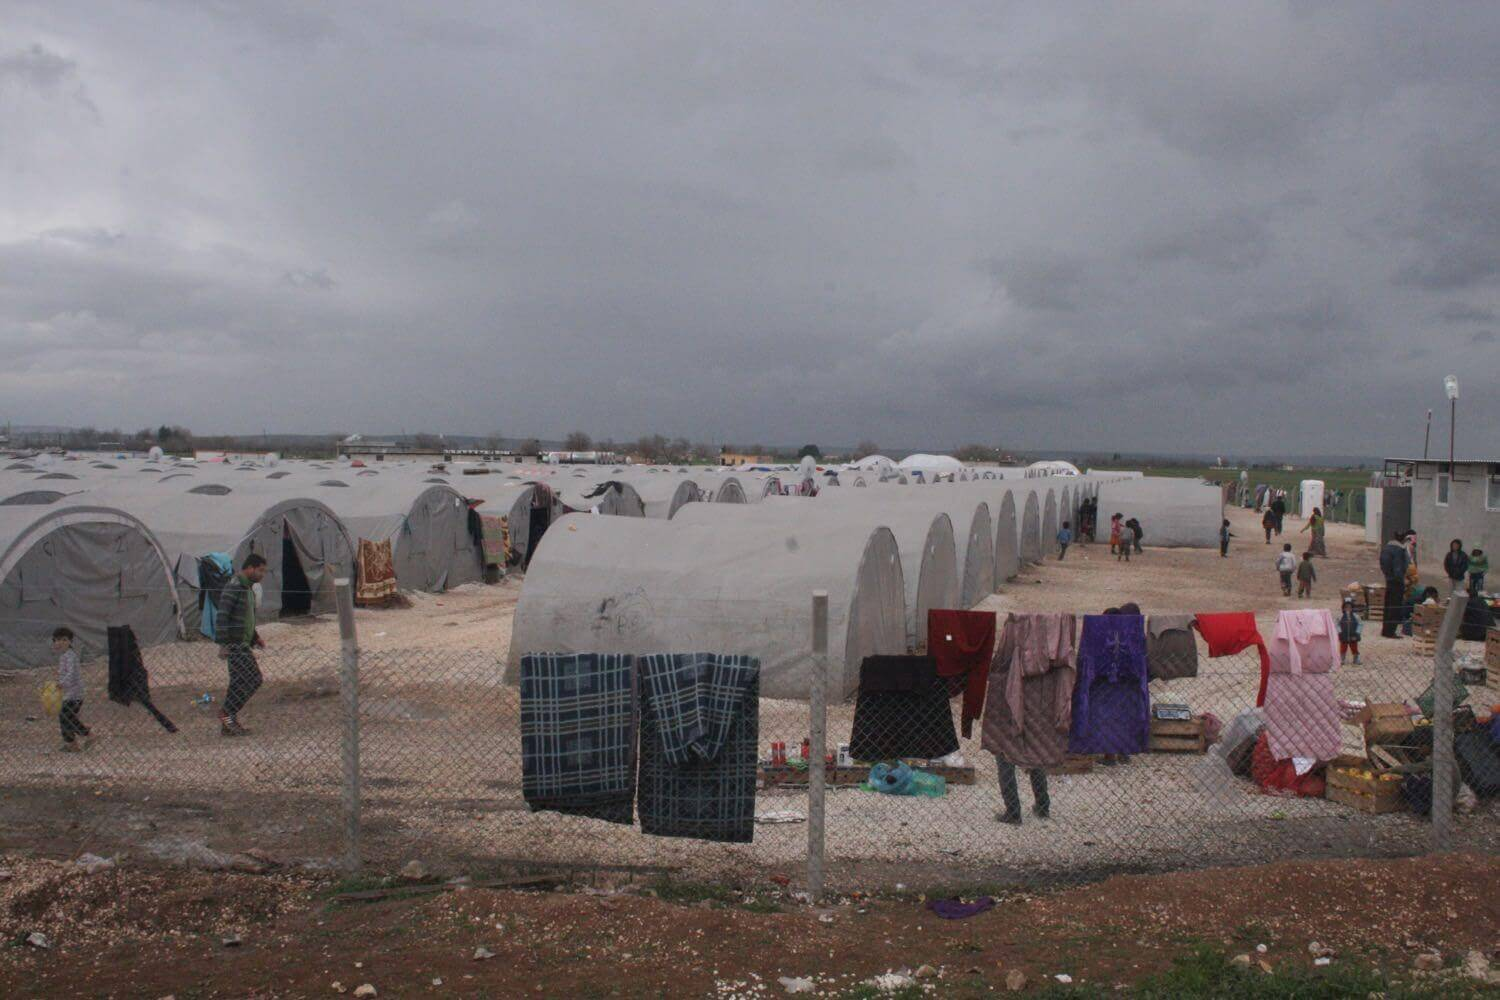 Refugees from Kobanê in a Camp in Southern Turkey Suruç, Februar 3, 2015